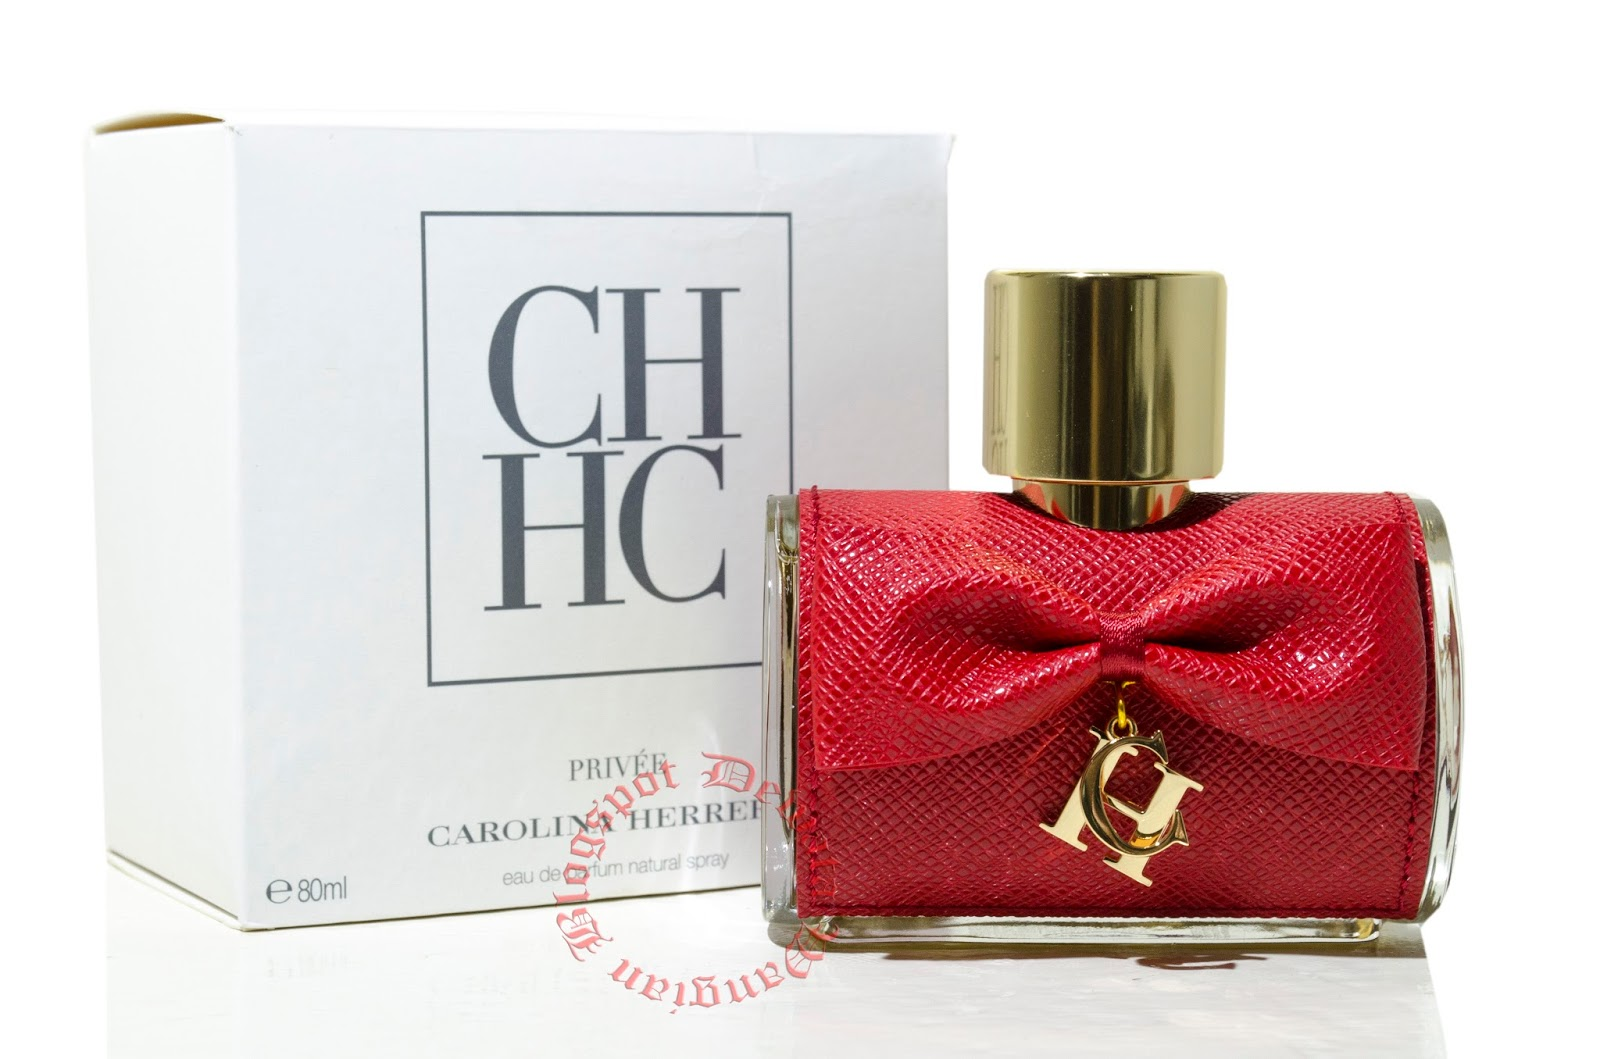 Wangianperfume Cosmetic Original Terbaik Parfum Adidas Get Ready A Celebration Of The Enigma Femininity And Love As Highest Unpredictable Force Born Ch Prive By Carolina Herrera Launched In February 2017